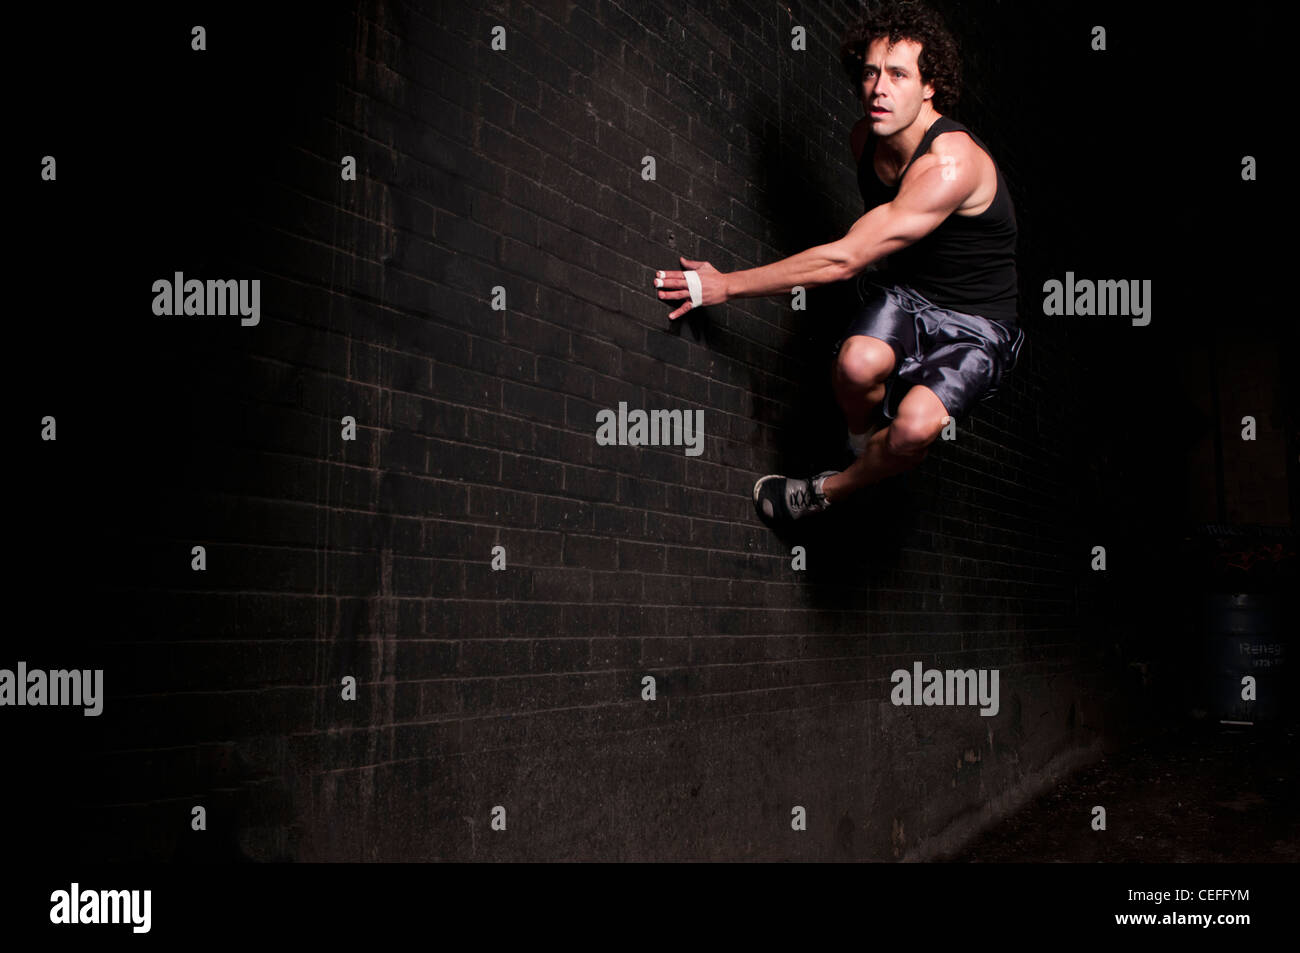 Runner bouncing off side of wall - Stock Image